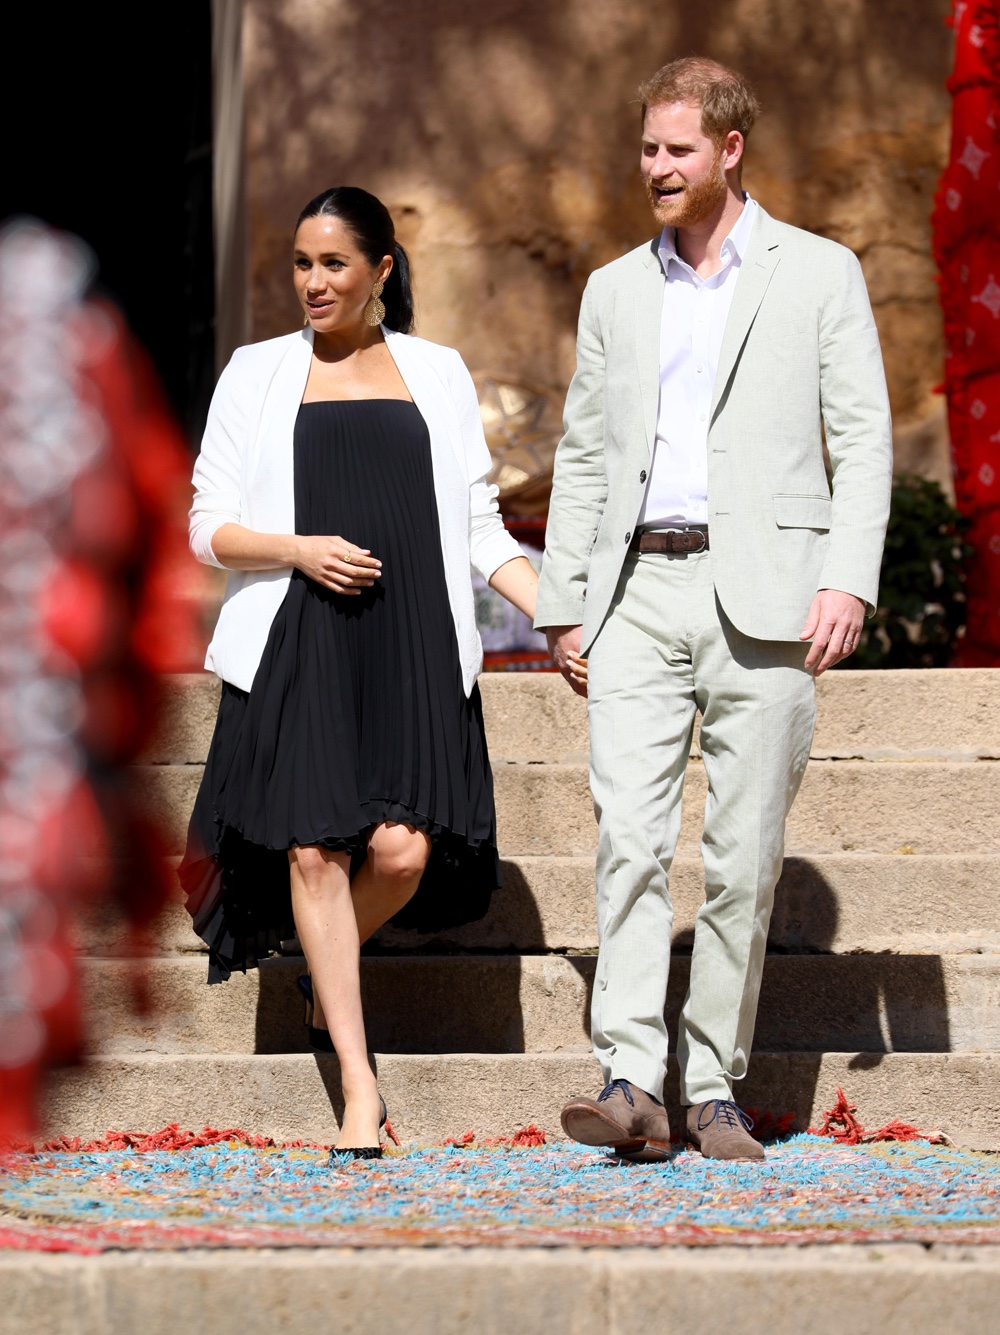 Prince Harry and Meghan Markle The Duke And Duchess Of Sussex Visit Morocco